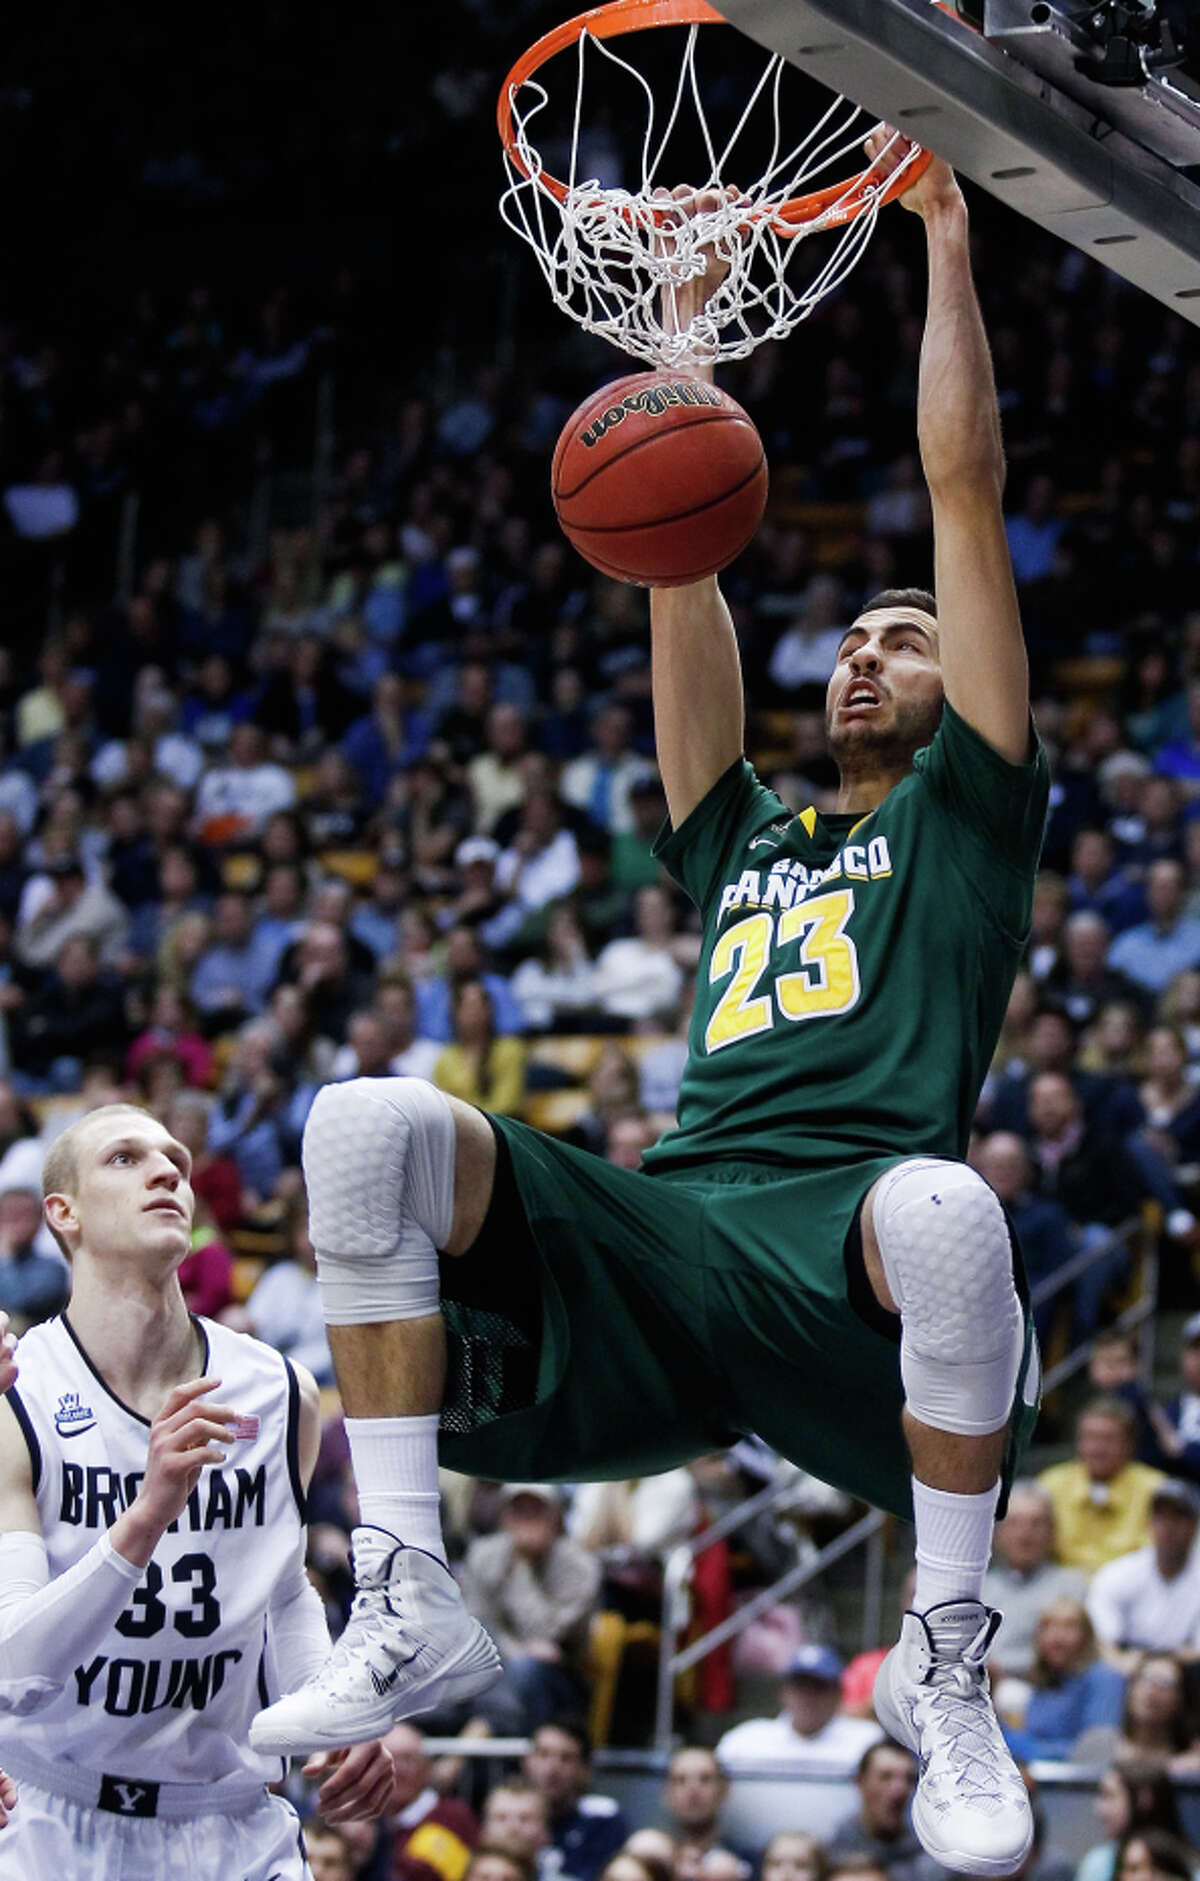 Mark Tollefsen, a 6-foot-9 junior, can shoot three-pointers as well as dunk.